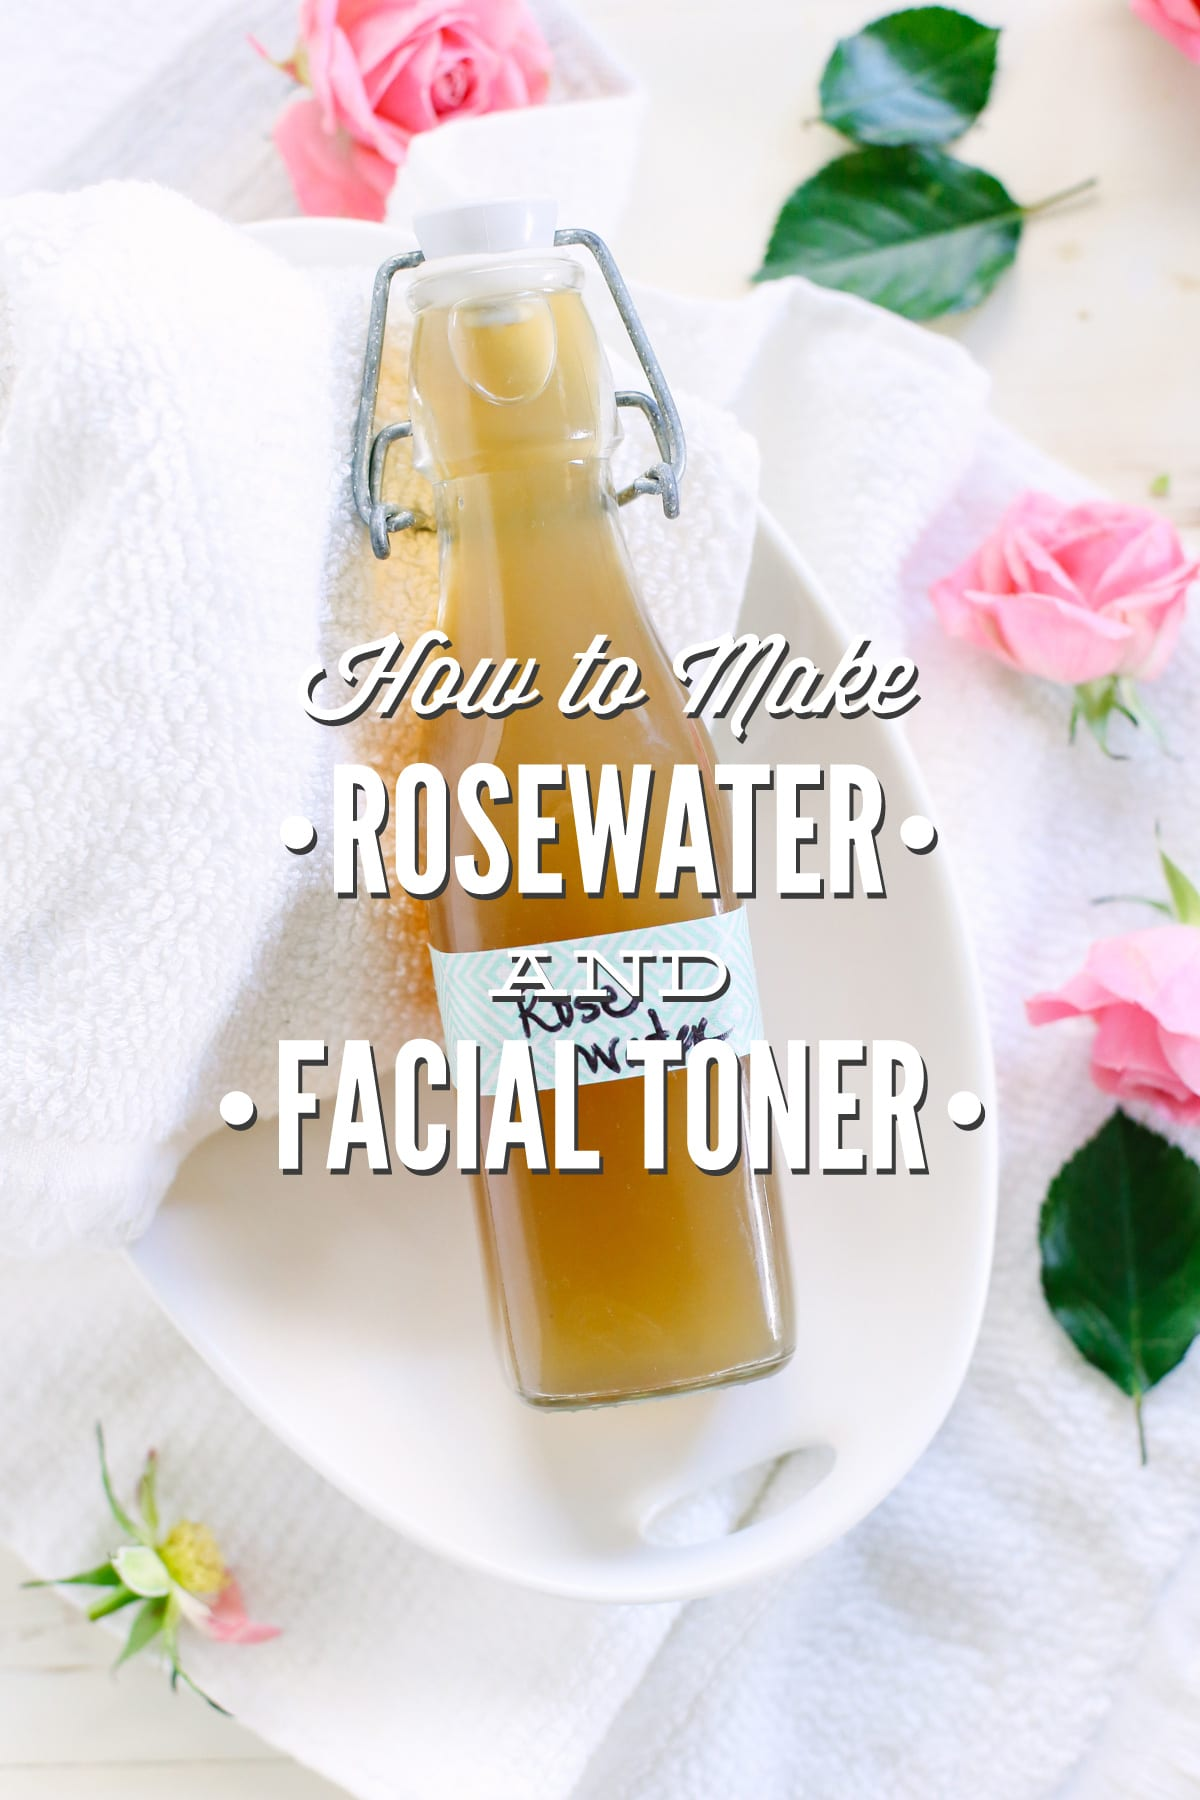 How to make rosewater and rosewater facial toner live simply solutioingenieria Images